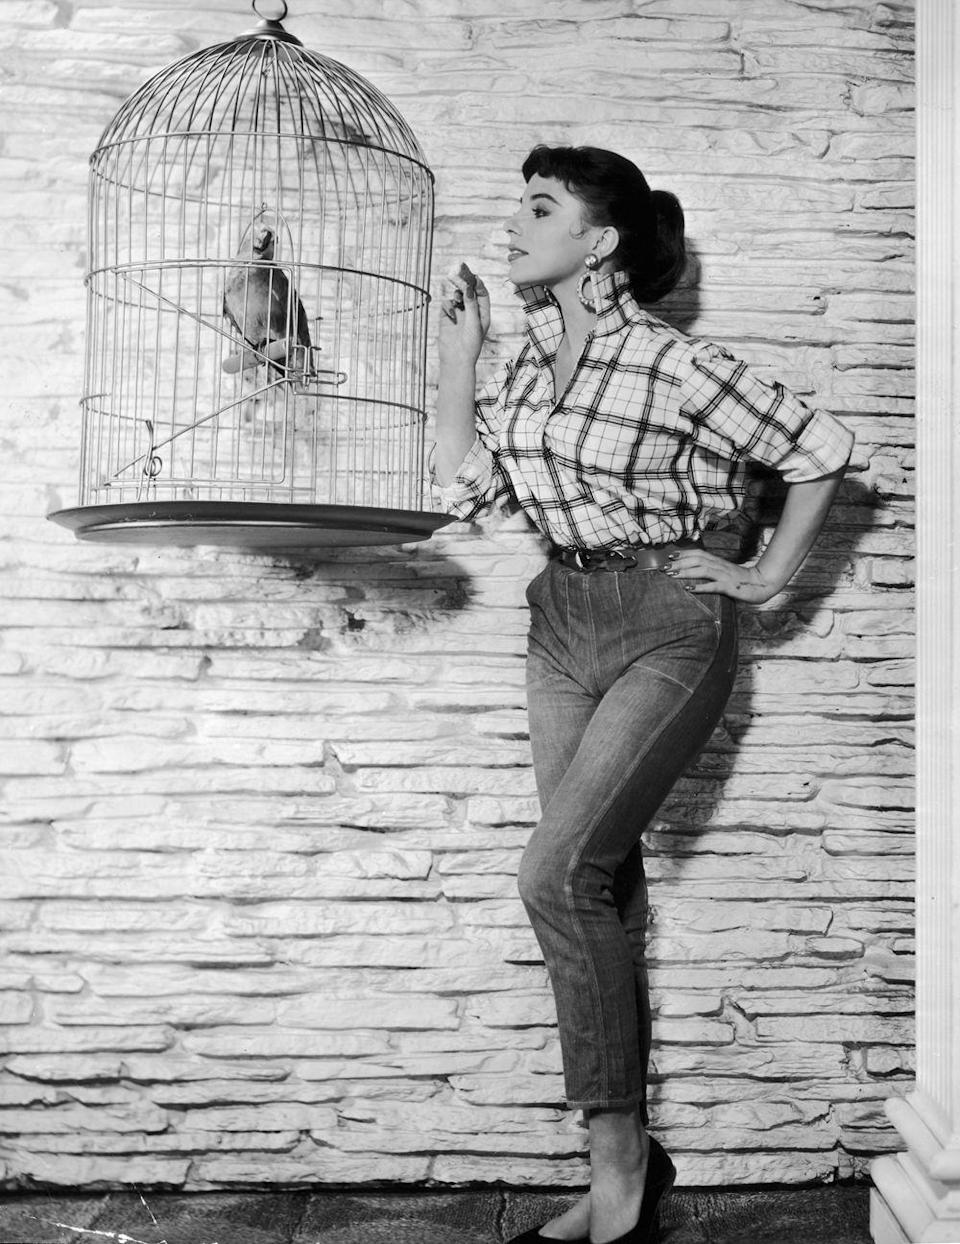 """<p>Actress Joan Collins wore her jeans uncuffed — and significantly more fitted in the leg. She's <a href=""""http://www.stuff.co.nz/life-style/fashion/6572112/I-can-still-rock-jeans-Joan-Collins"""" rel=""""nofollow noopener"""" target=""""_blank"""" data-ylk=""""slk:famously said"""" class=""""link rapid-noclick-resp"""">famously said</a> that she doesn't think women over 40 should wear blue jeans, but here, she's just 22 years old. (Also: we disagree with that statement of hers.)</p>"""